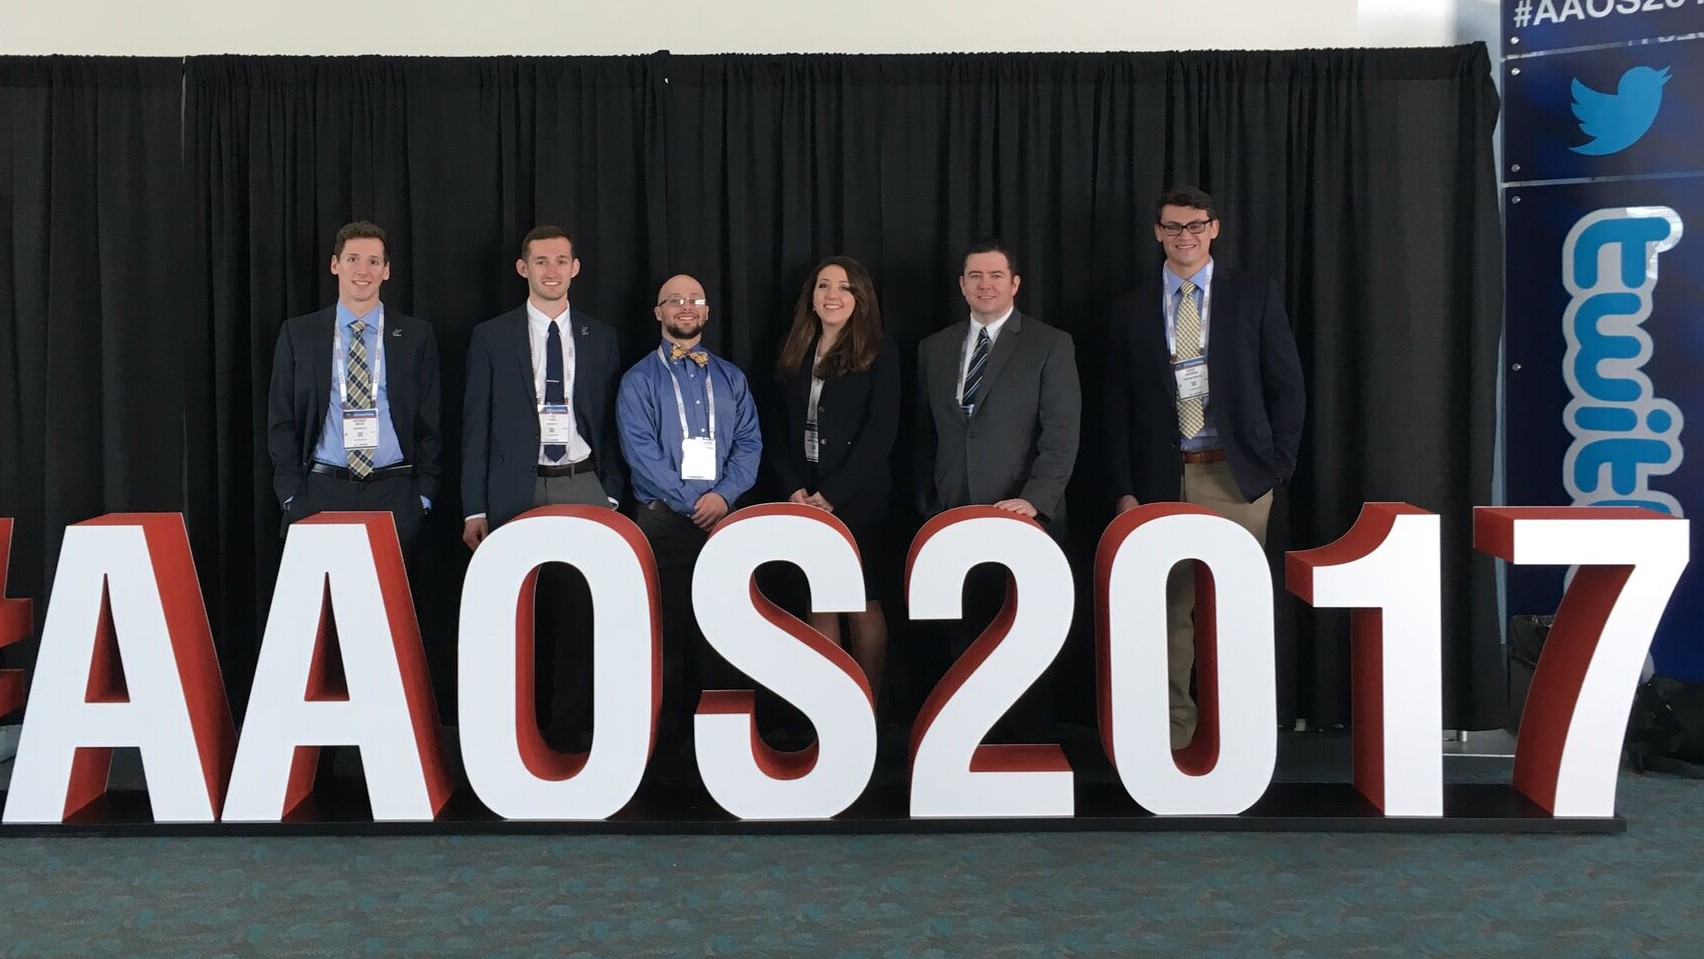 Presenters at the AAOS conference